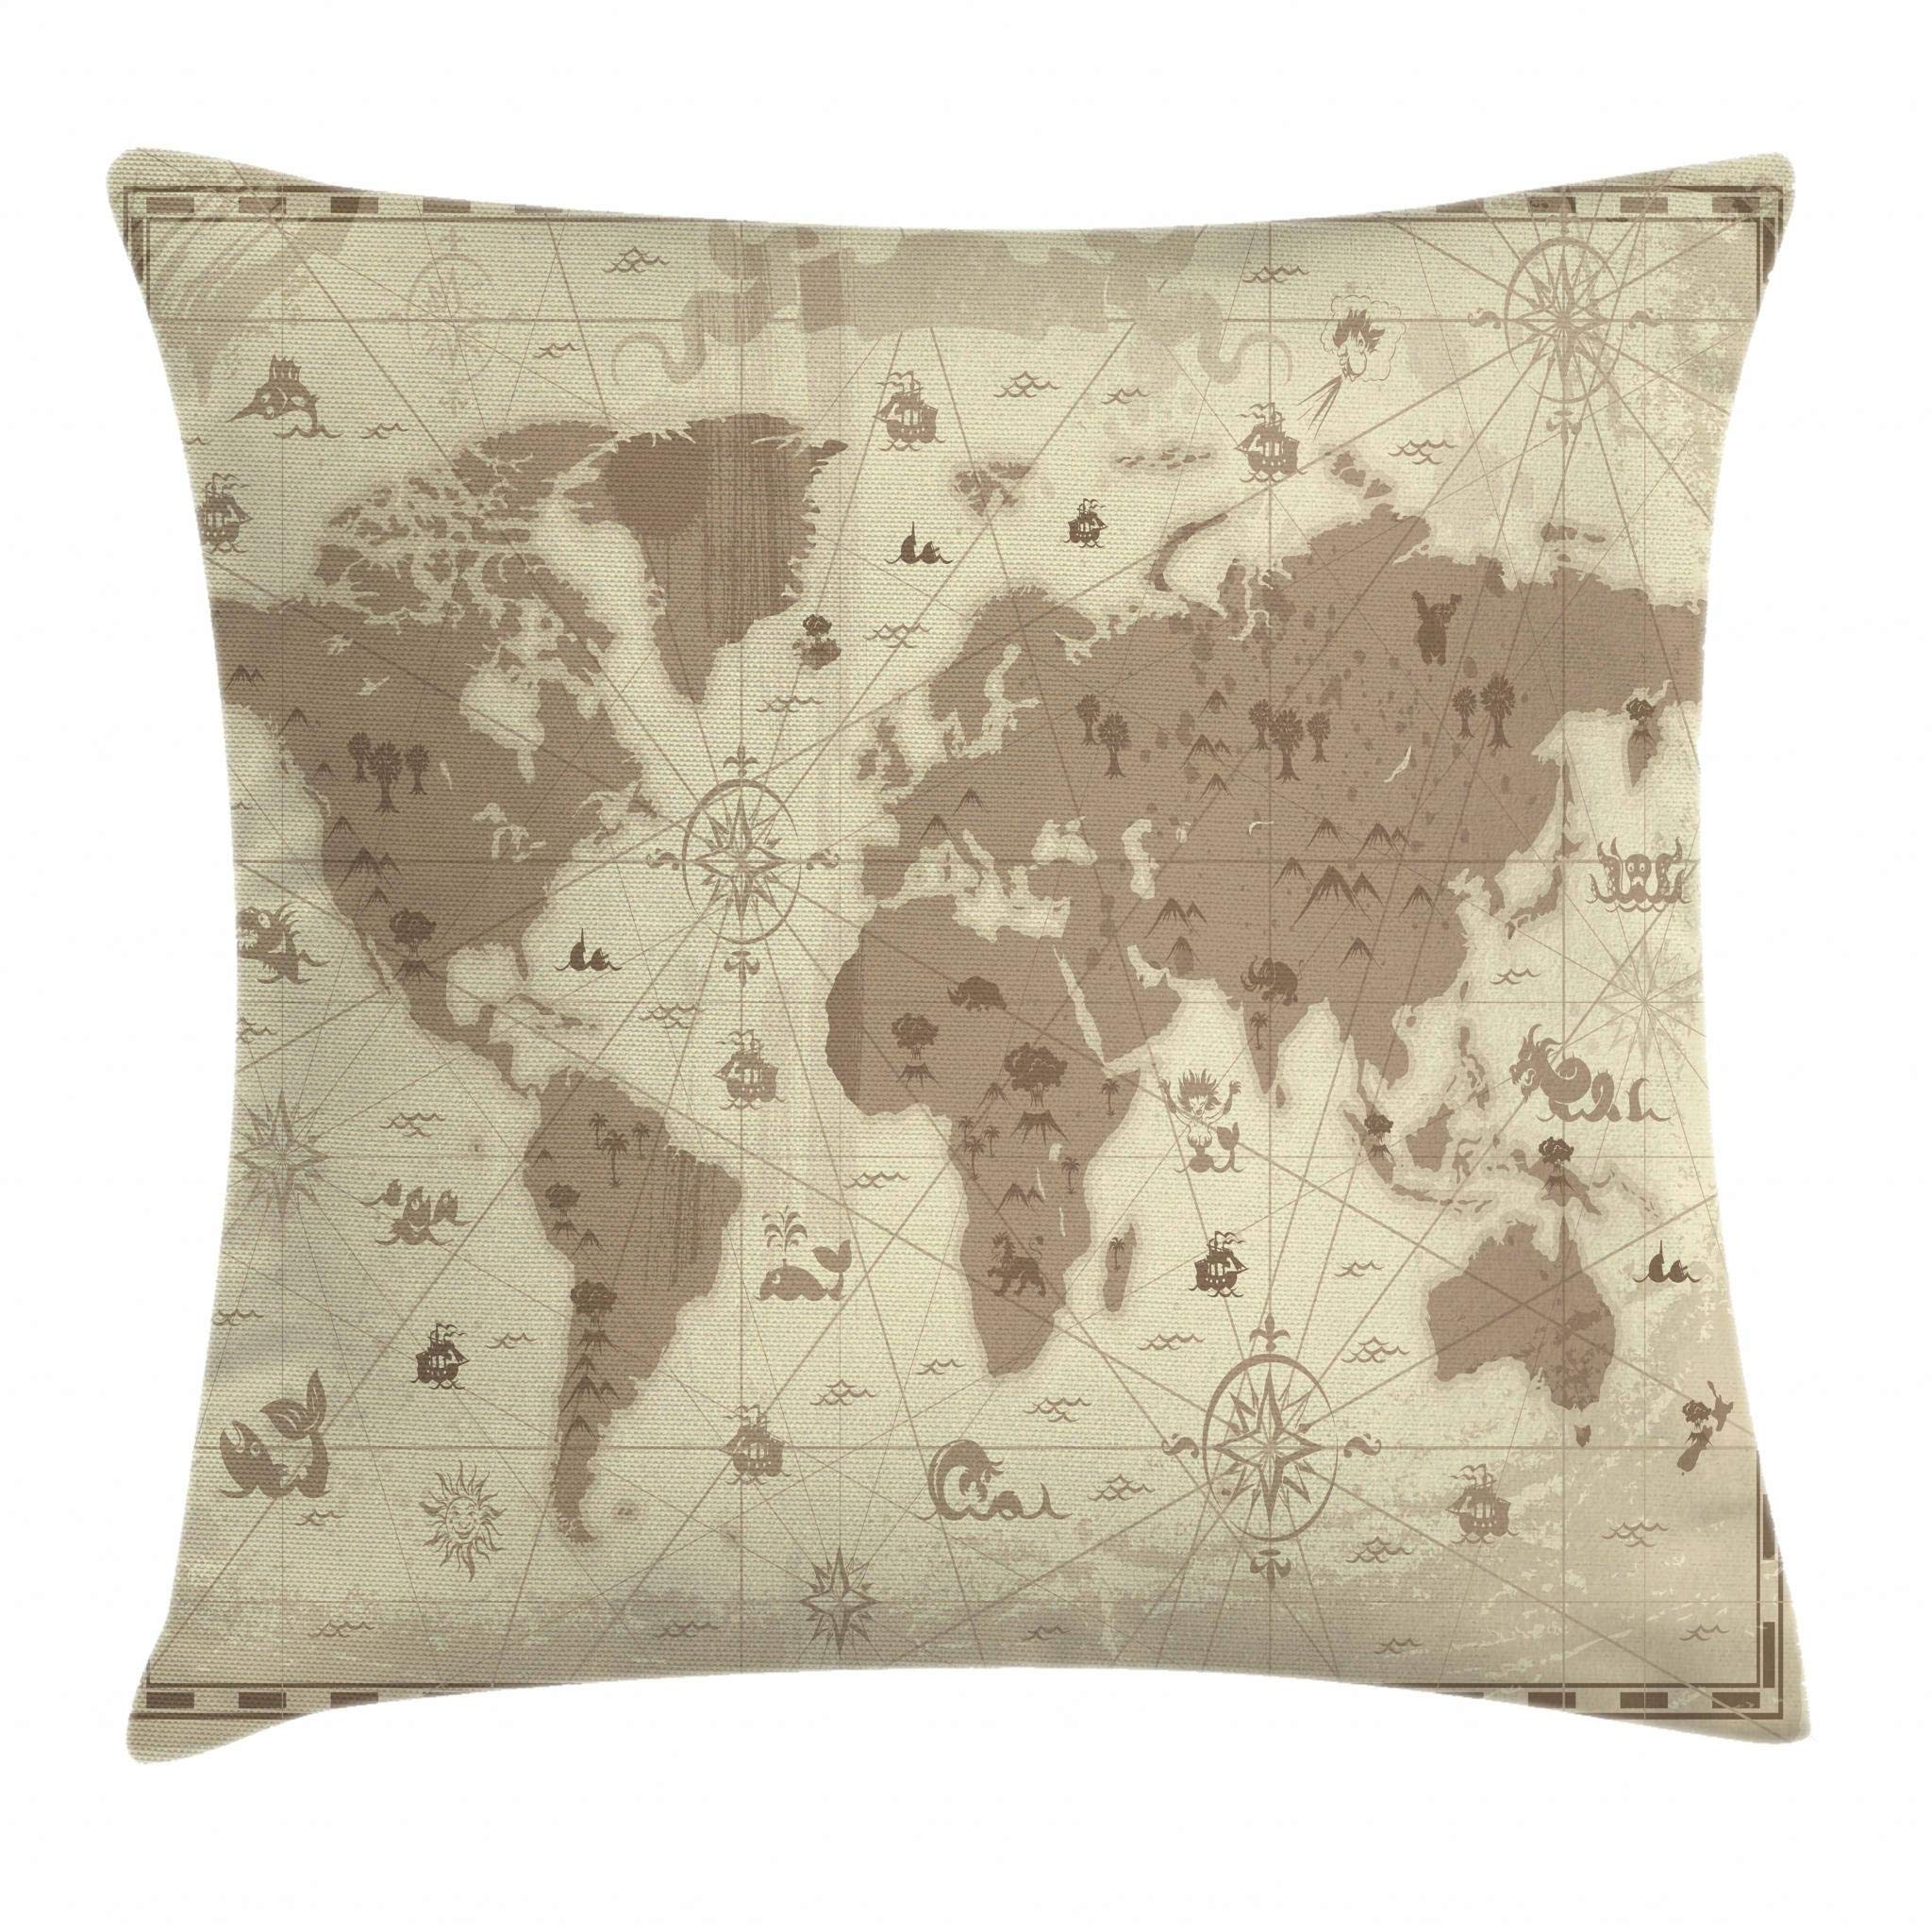 Ambesonne Map Throw Pillow Cushion Cover, Aged Retro Styled Map of The World with Mountains Fantasy Monsters and Compass, Decorative Square Accent Pillow Case, 24 X 24 Inches, Sepia Light Yellow